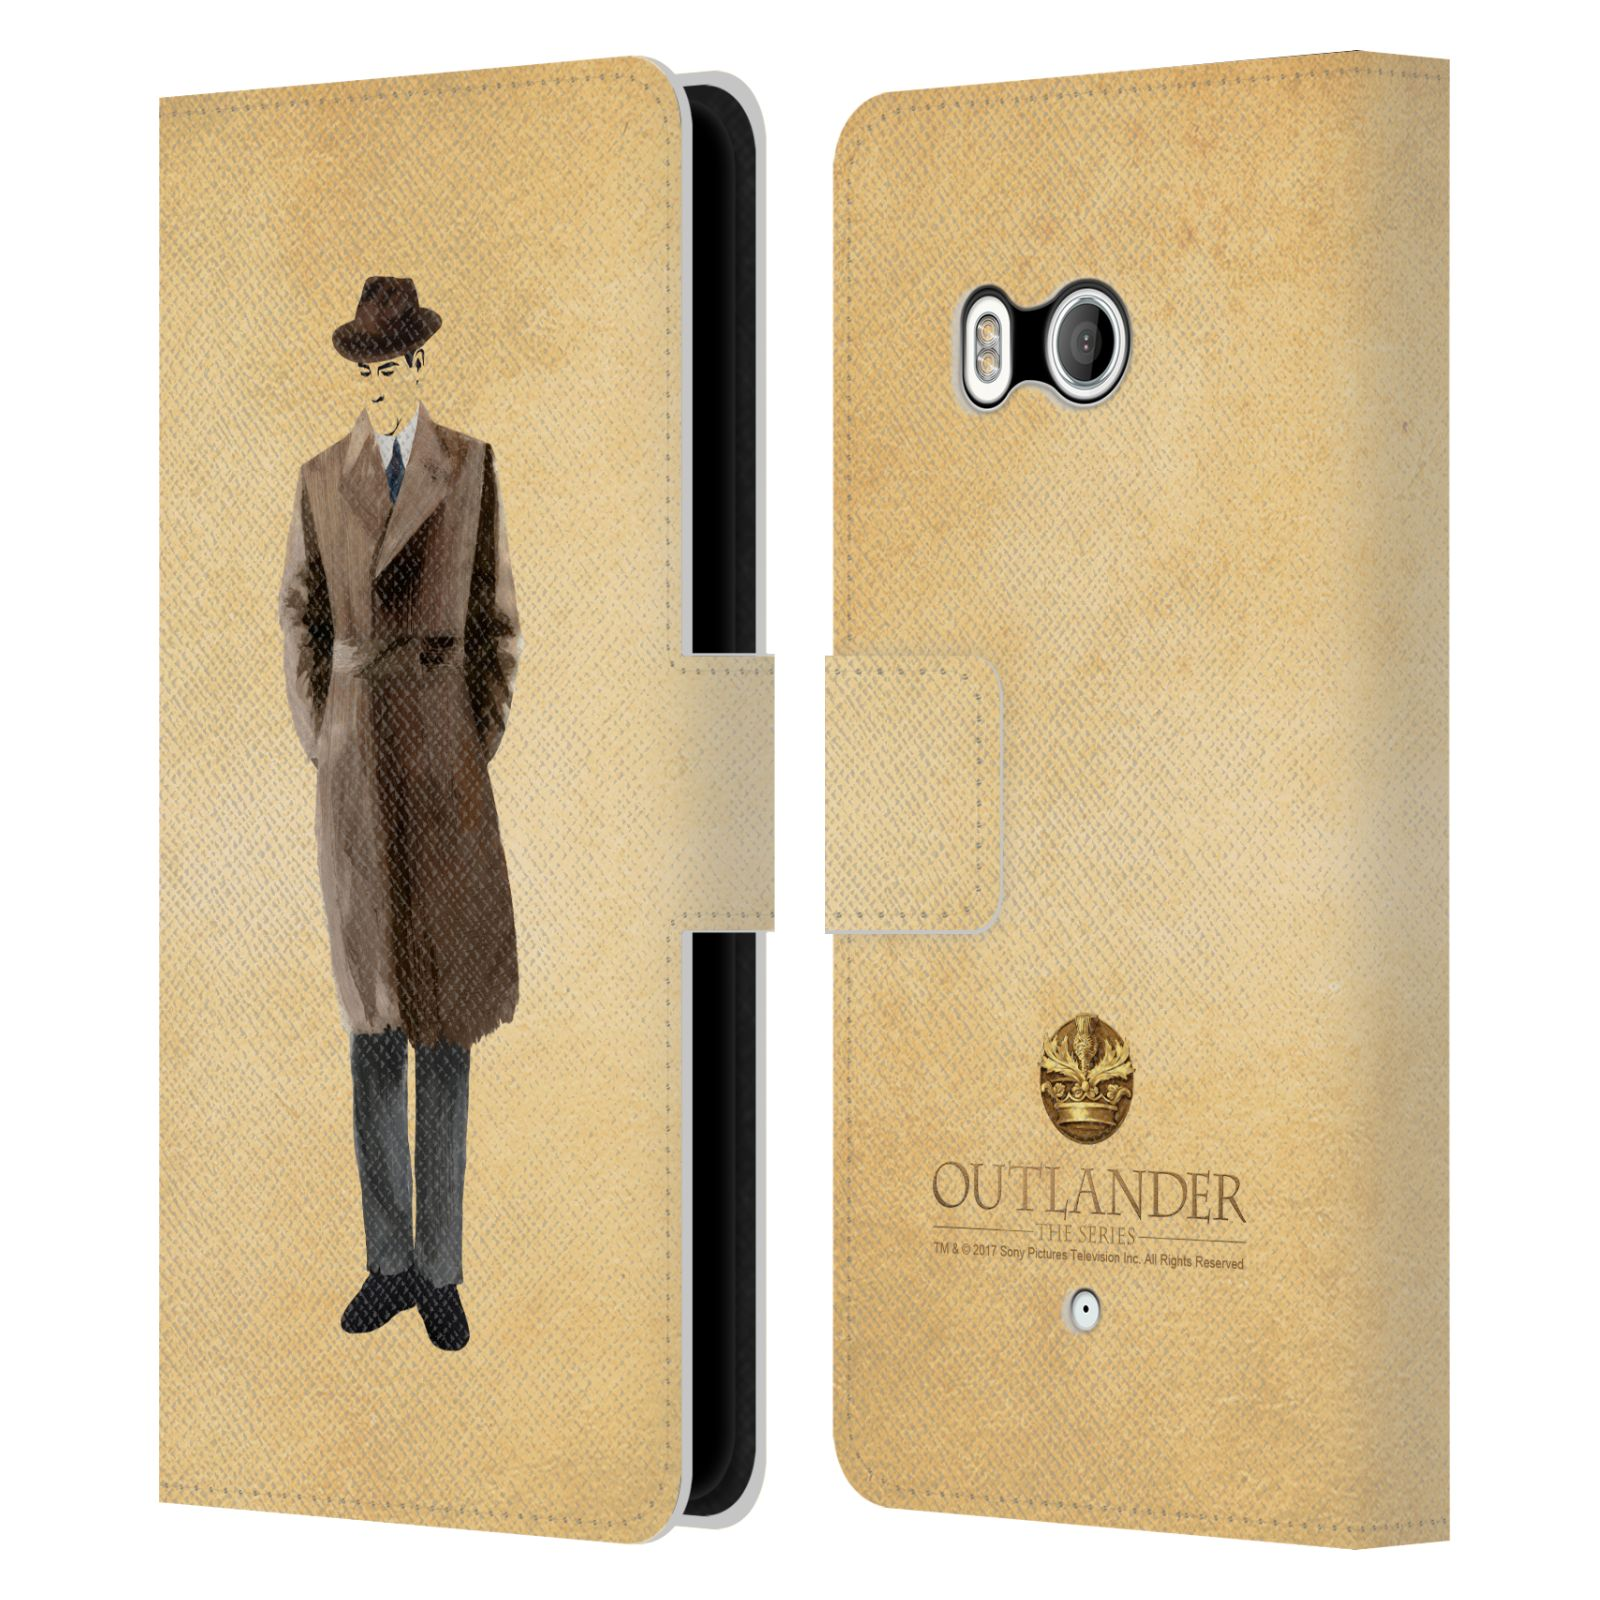 OFFICIAL-OUTLANDER-PAINTED-IMAGES-LEATHER-BOOK-WALLET-CASE-FOR-HTC-PHONES-1